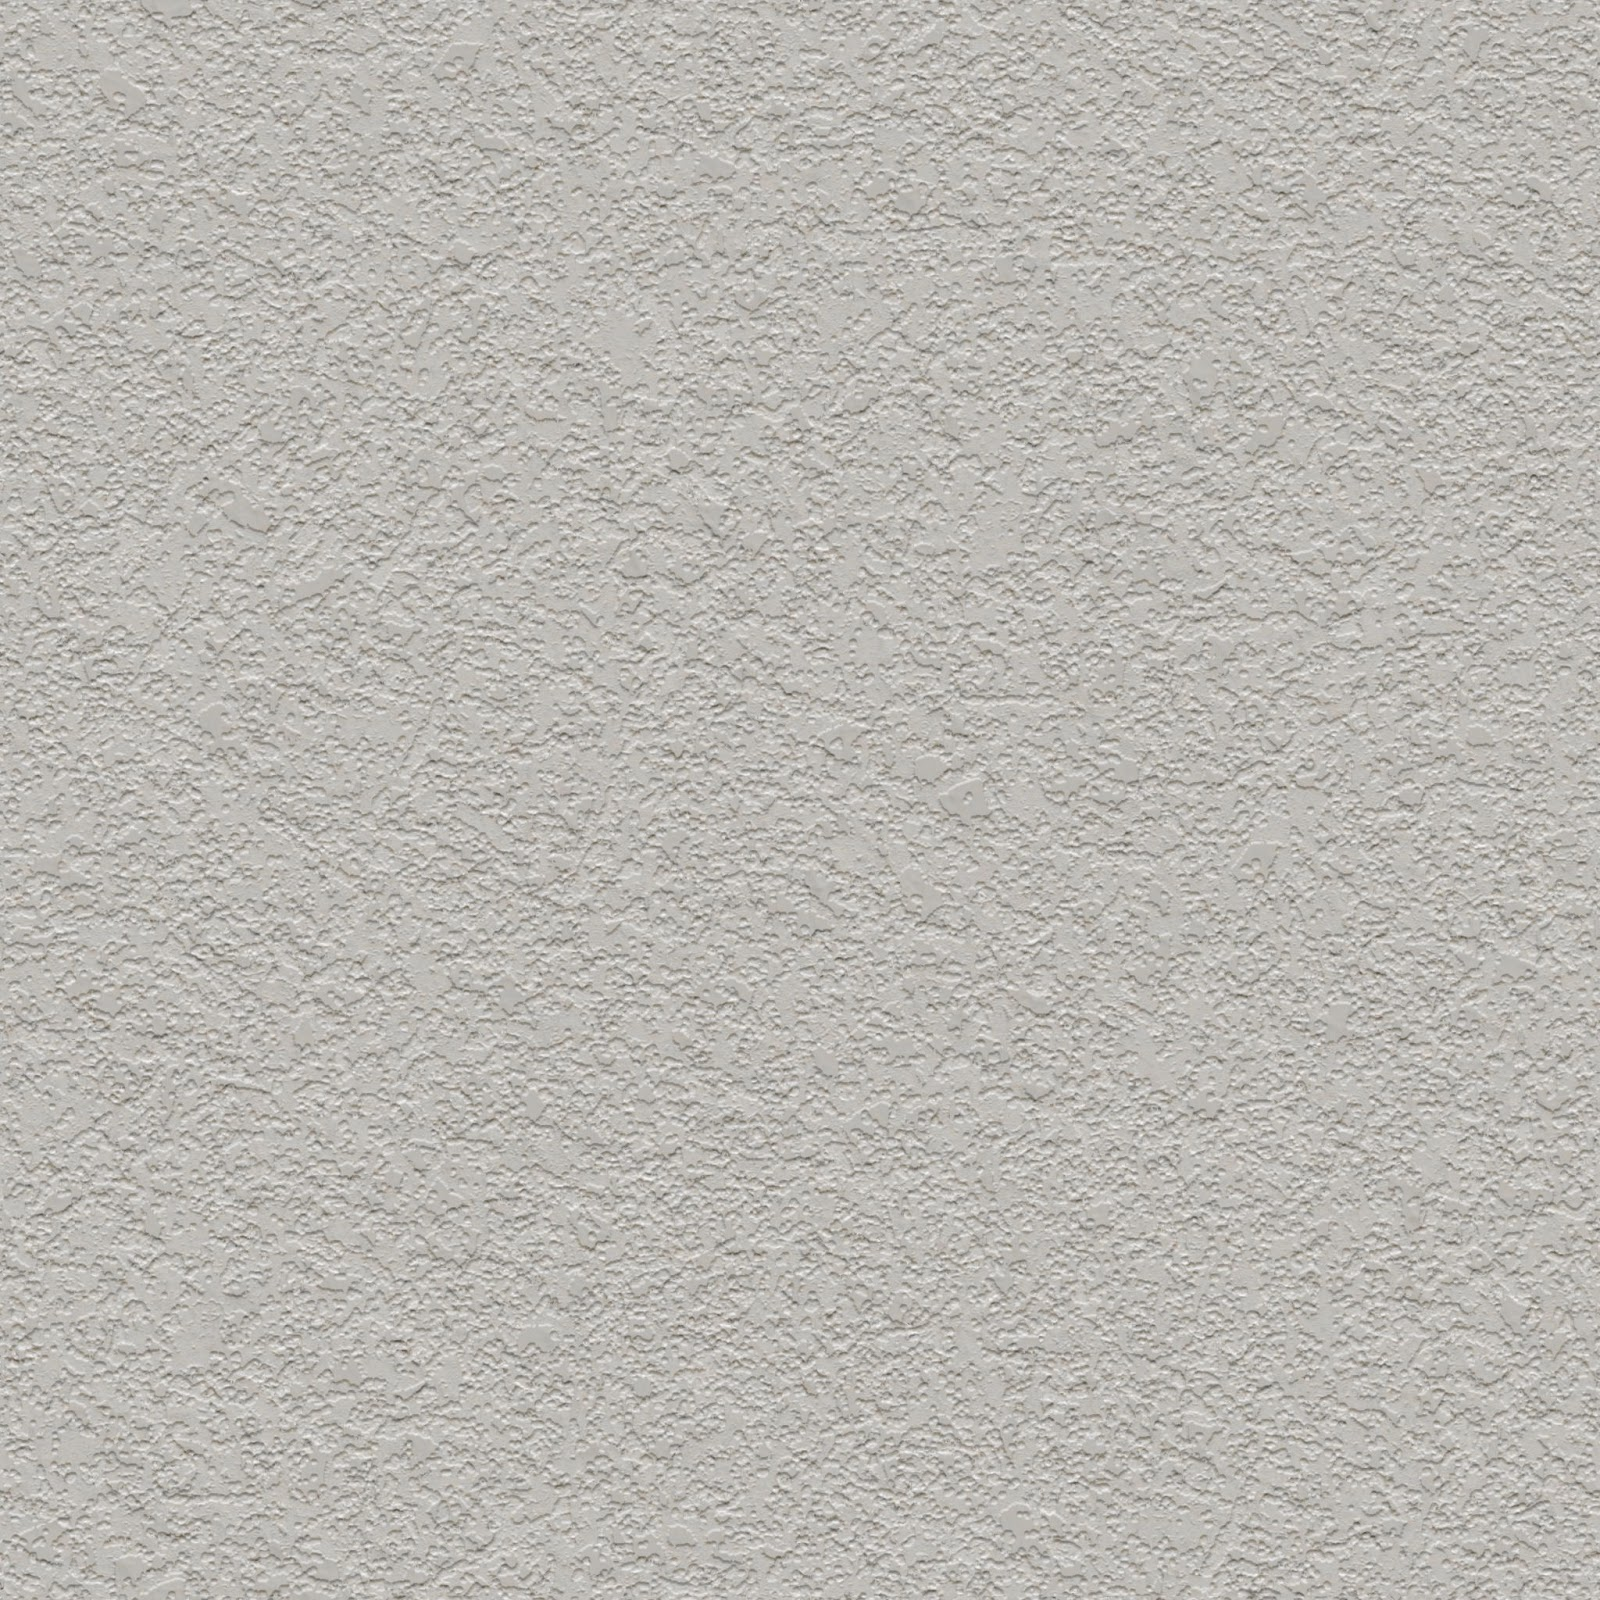 Smooth_stucco_white_paint_streaky_plaster_fine_detail_wall_texture_seamless_tileable_april12